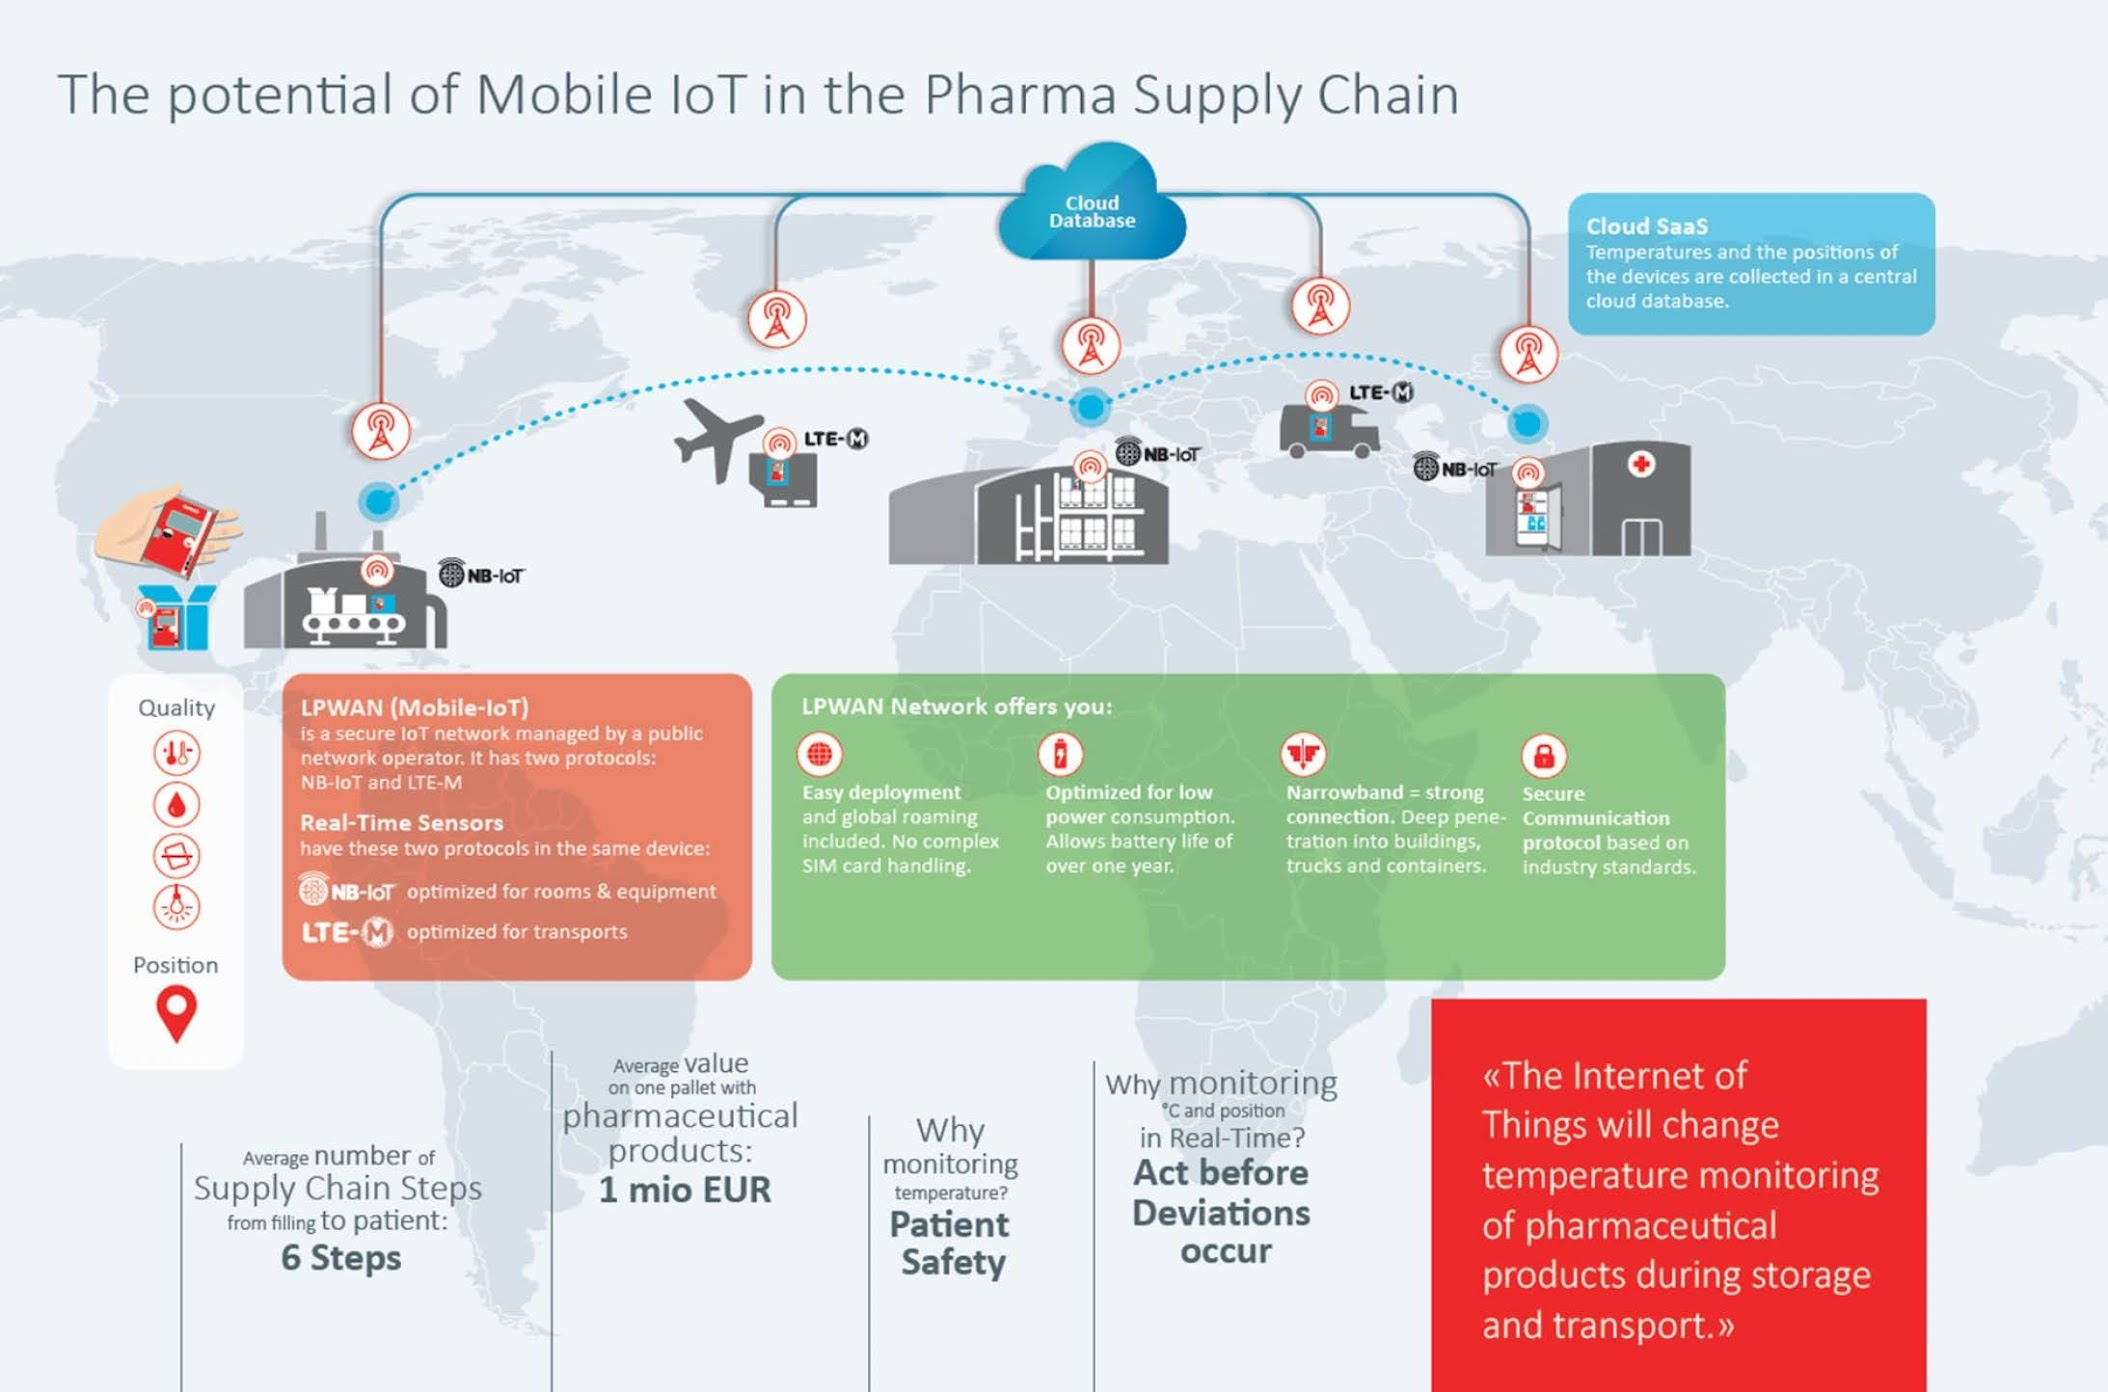 The potential of Mobile IoT in the Pharma Supply Chain